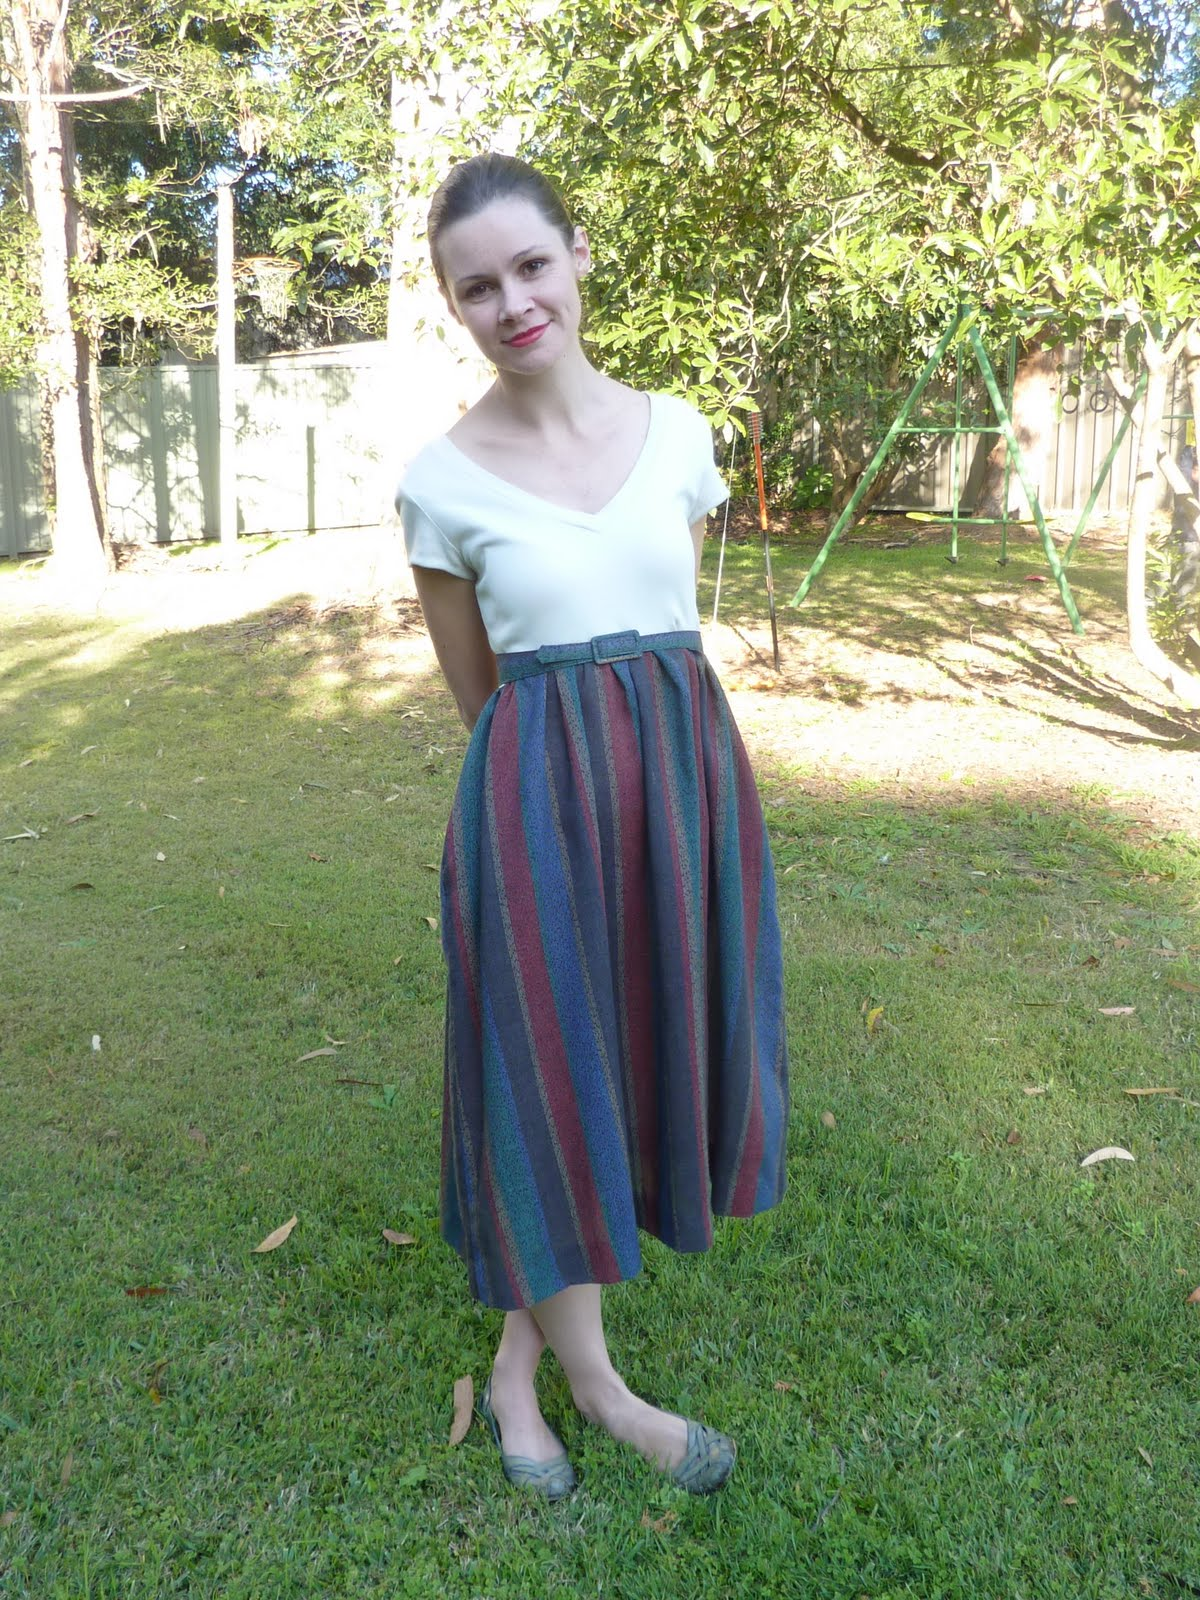 born again creations: 15. Remaking Vintage Clothing